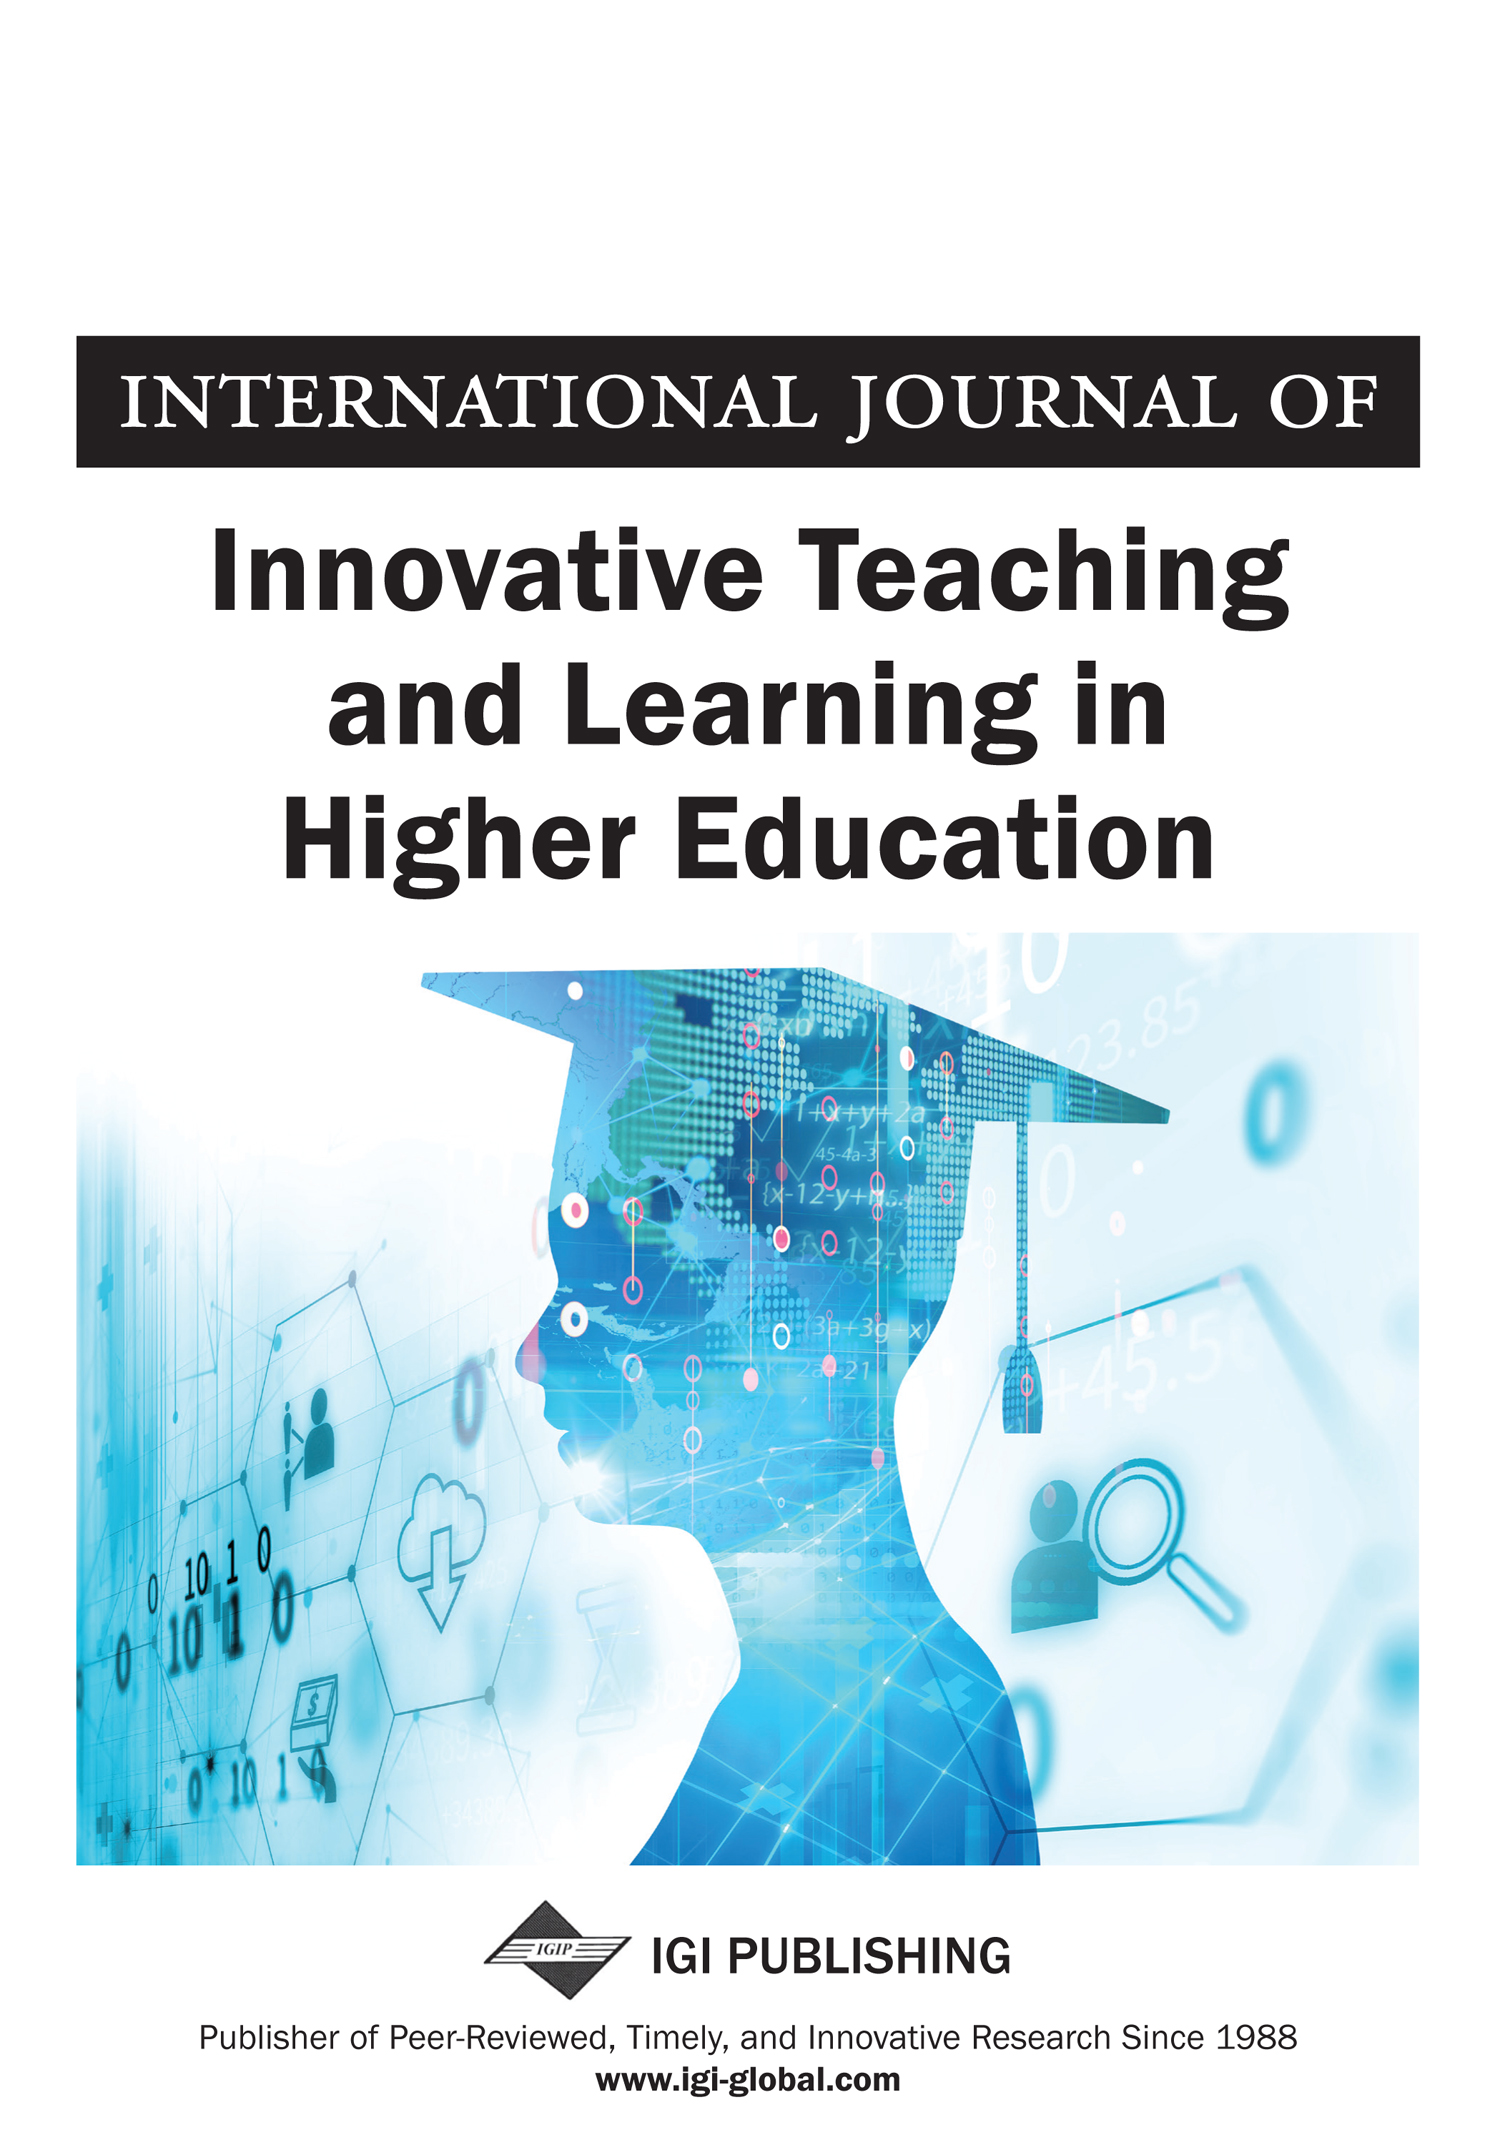 International Journal of Innovative Teaching and Learning in Higher Education (IJITLHE)